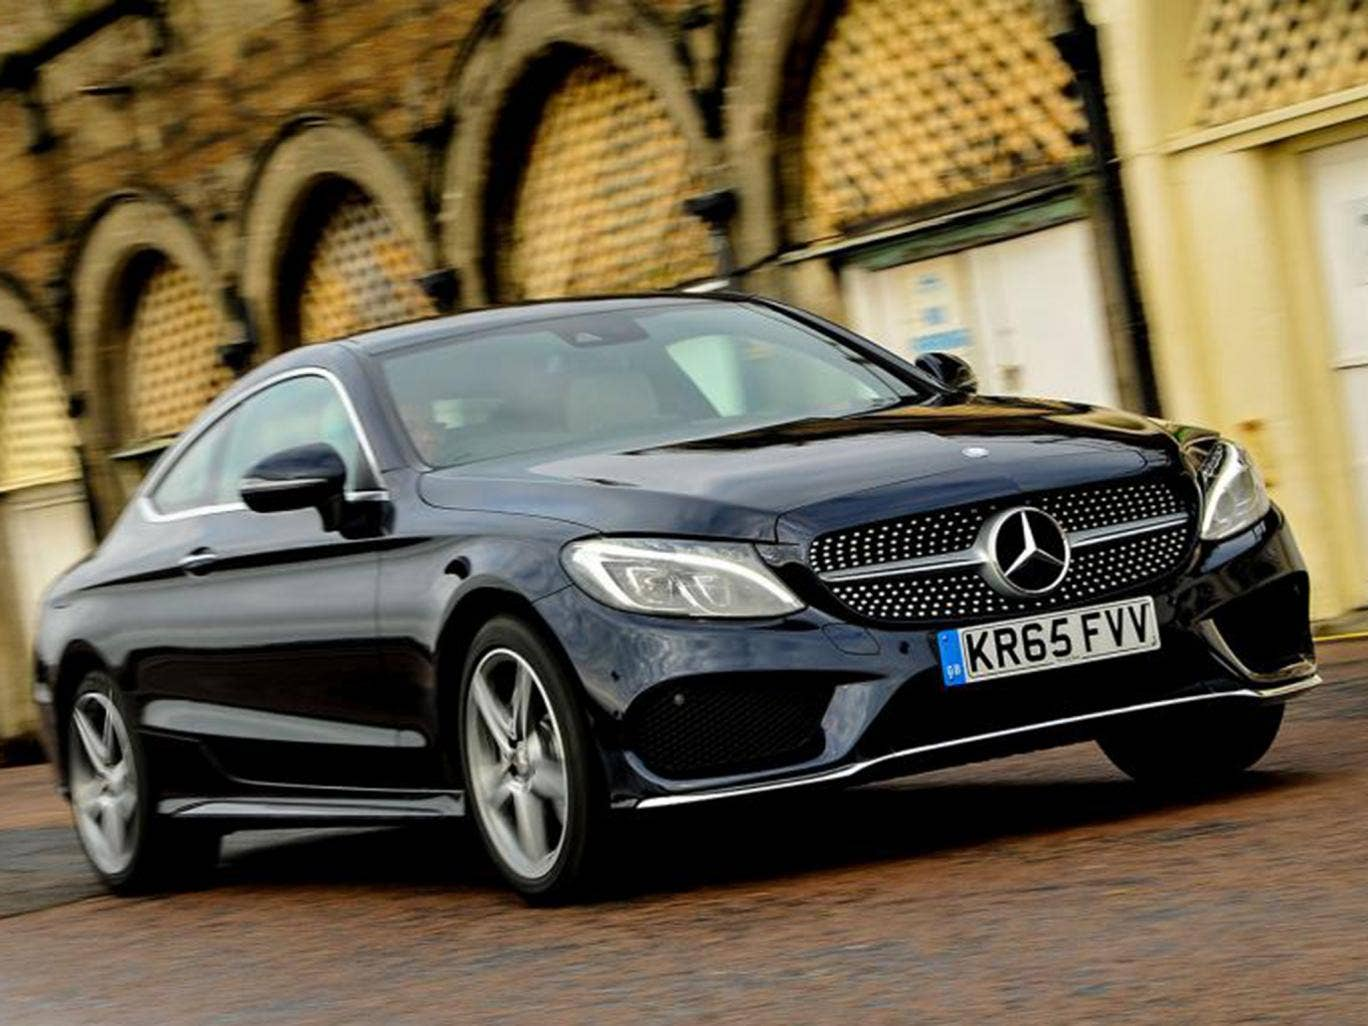 2016 mercedes c220d amg line coup car review a grand car for high days and holidays. Black Bedroom Furniture Sets. Home Design Ideas